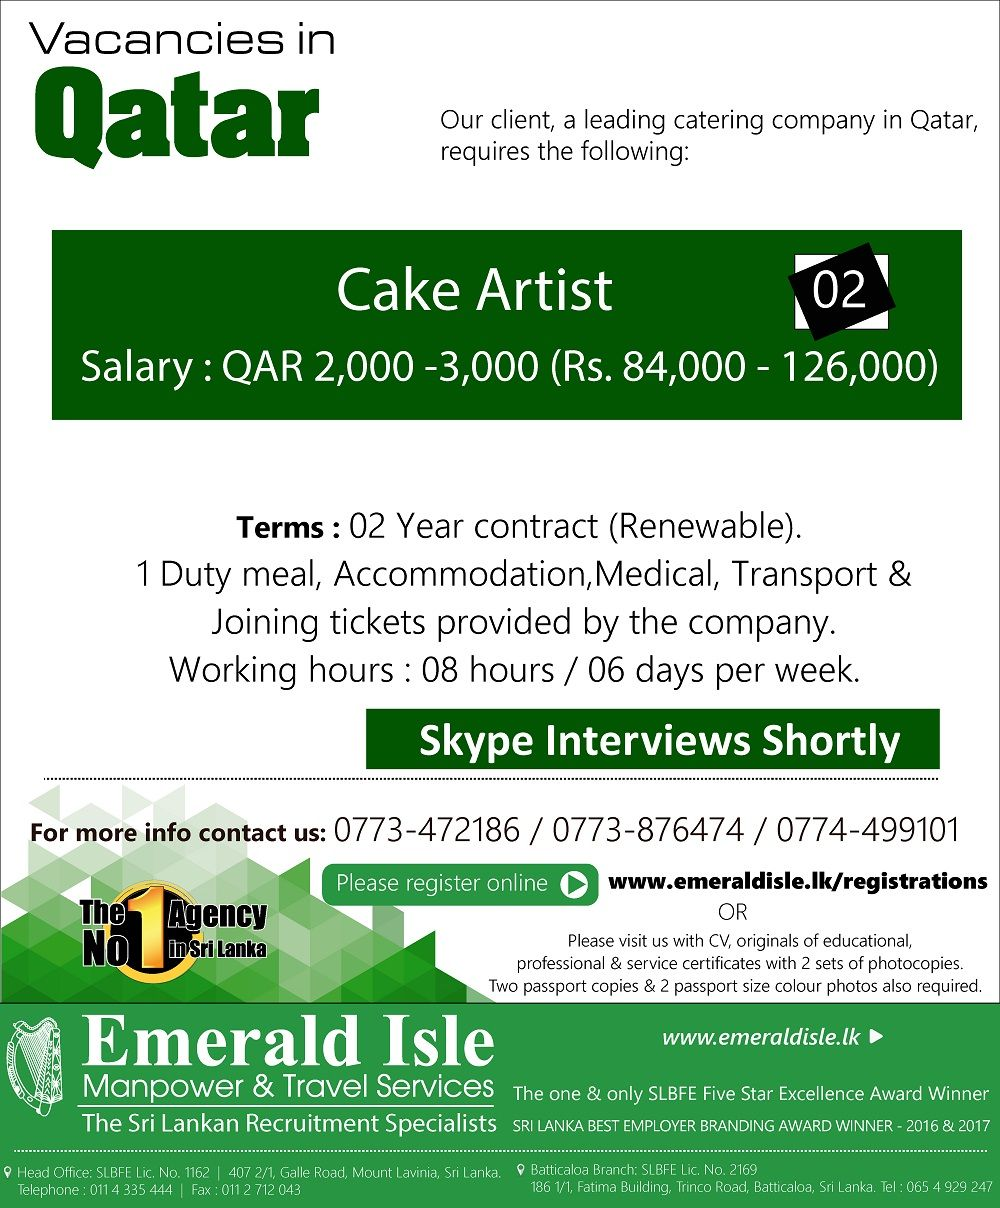 Emerald isle manpower travel services the global